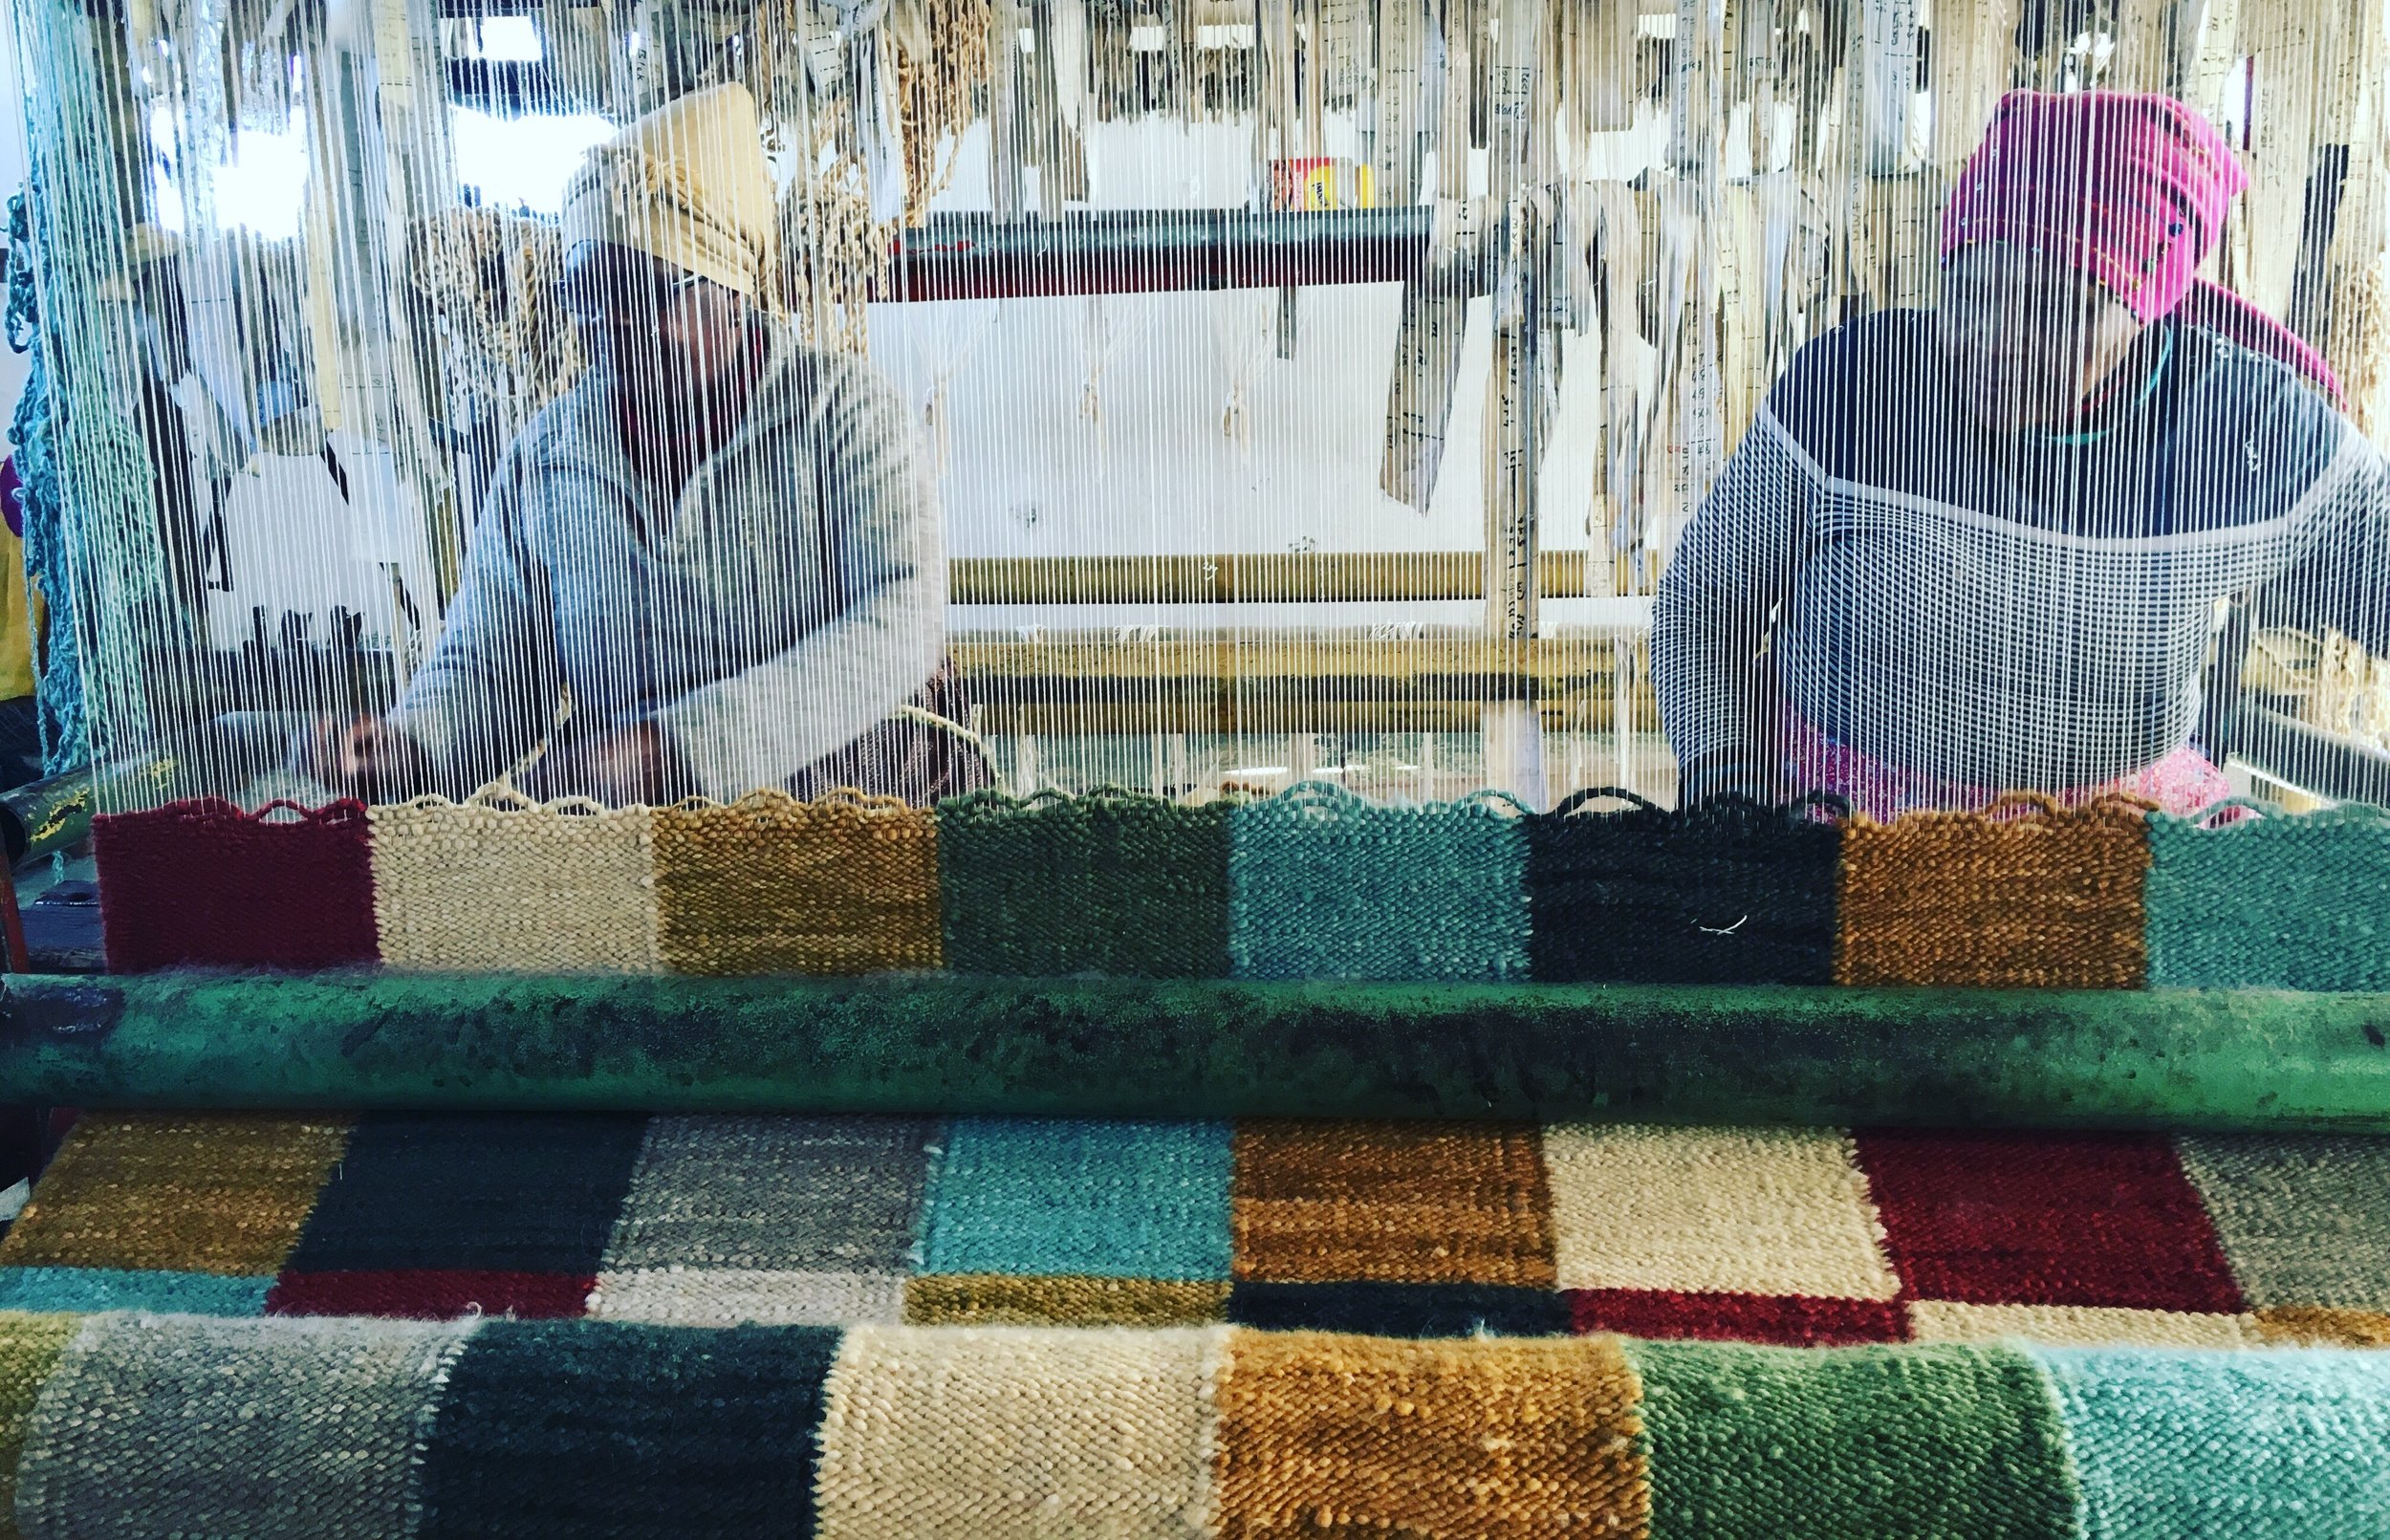 TWO WOMEN WEAVE TOGETHER ON A HAND MADE LOOM, SKILFULLY FOLLOWING PATTERNS AS THEY PLAIT THE YARN THROUGH THE WEFT.